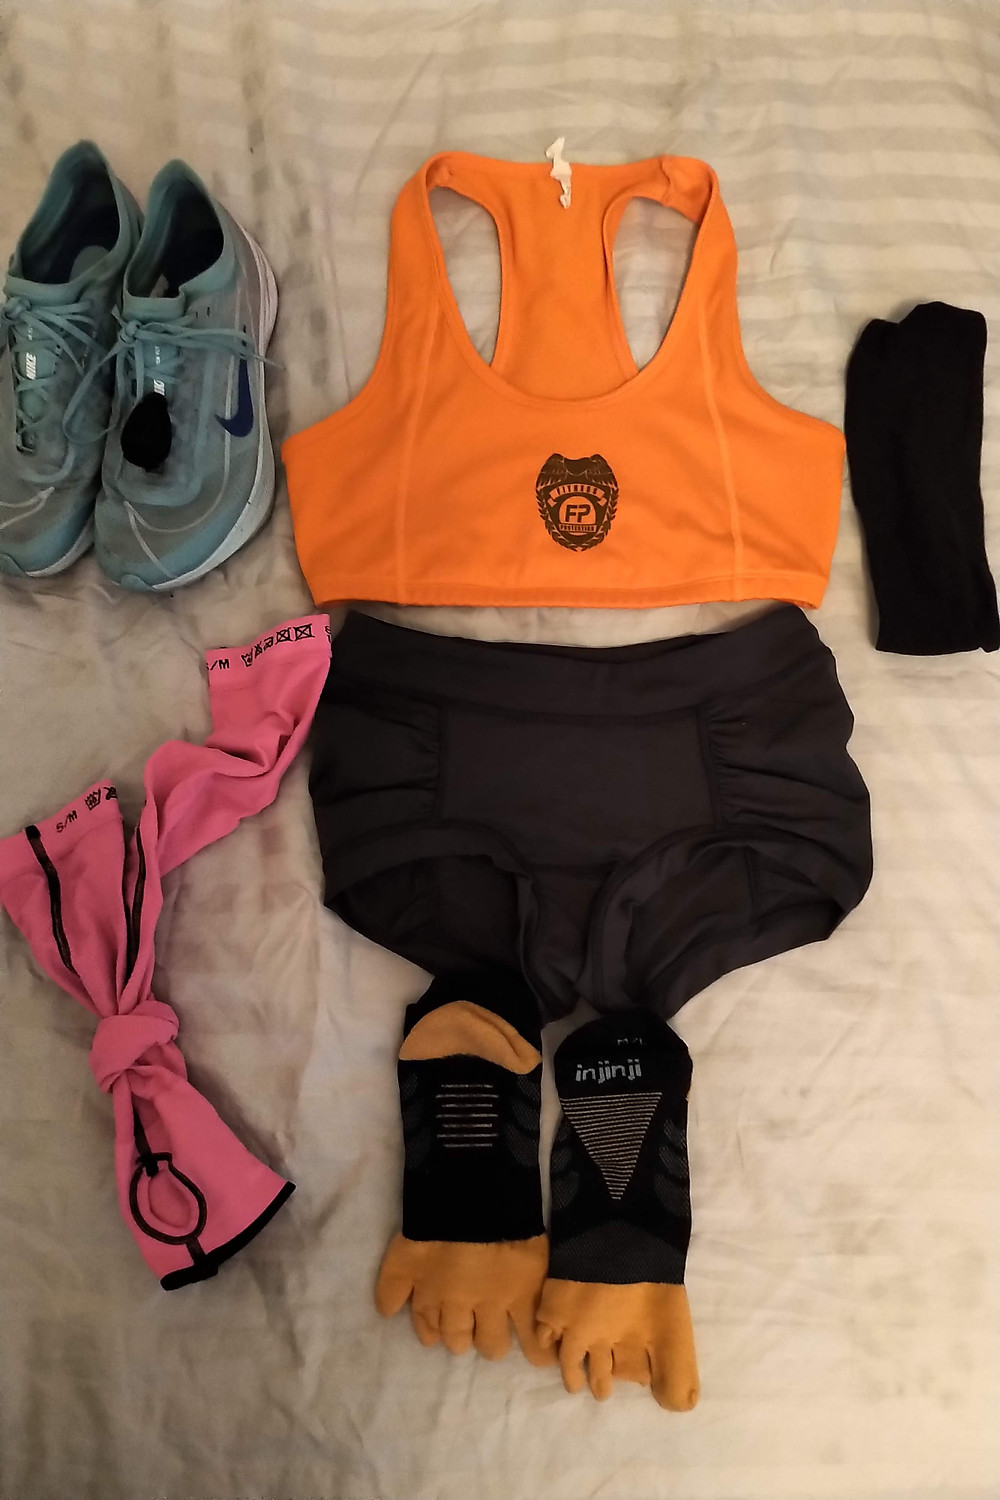 Fitness Protection Program Coach MK NYC Marathon Racing Kit